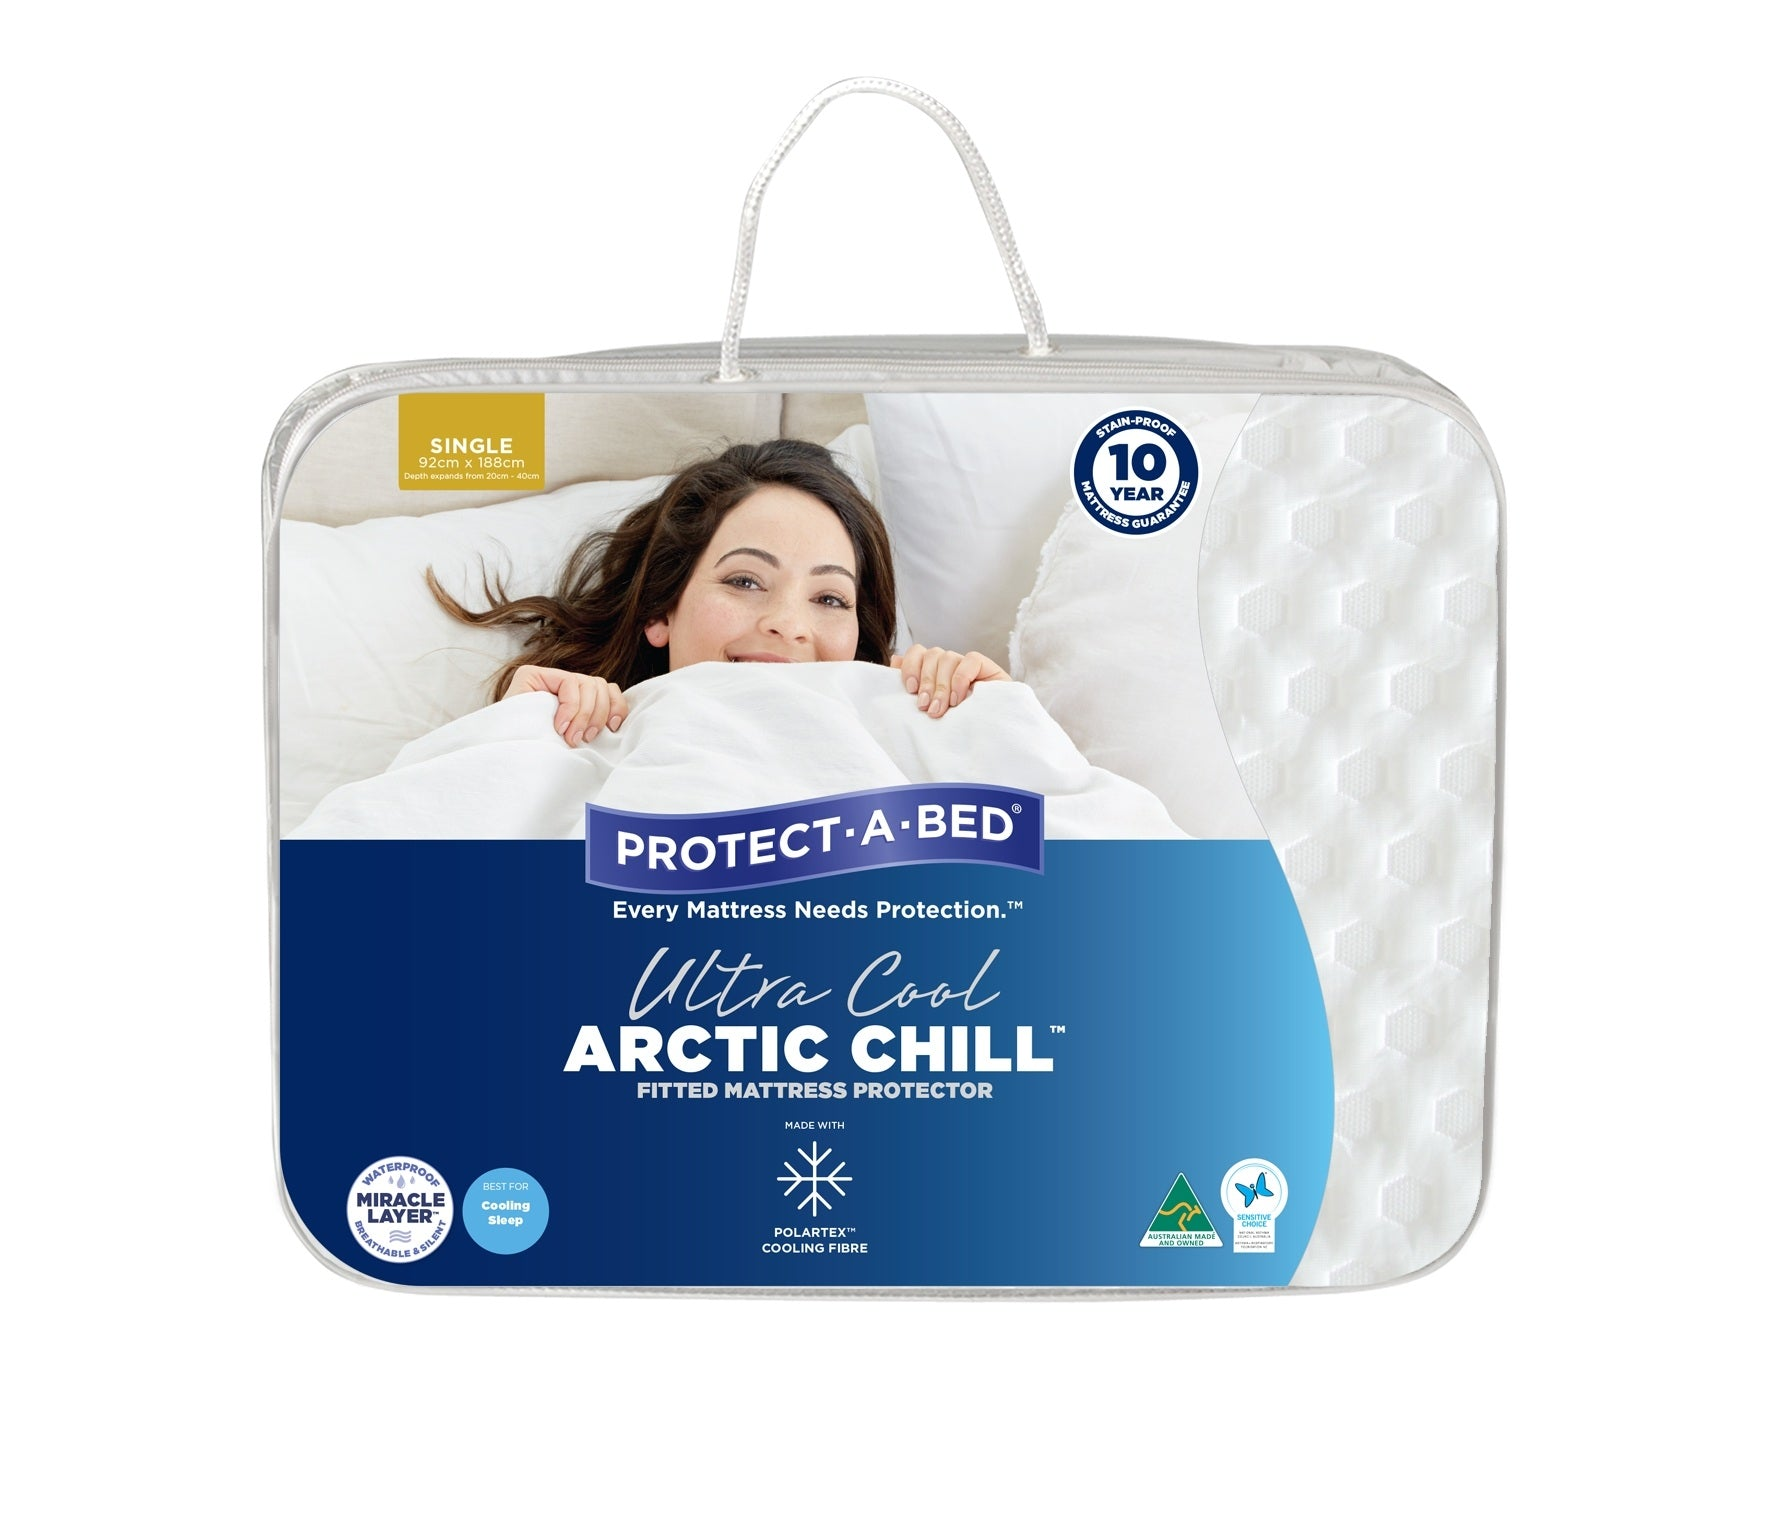 Protect-a-Bed Arctic Chill Waterproof Mattress Protector